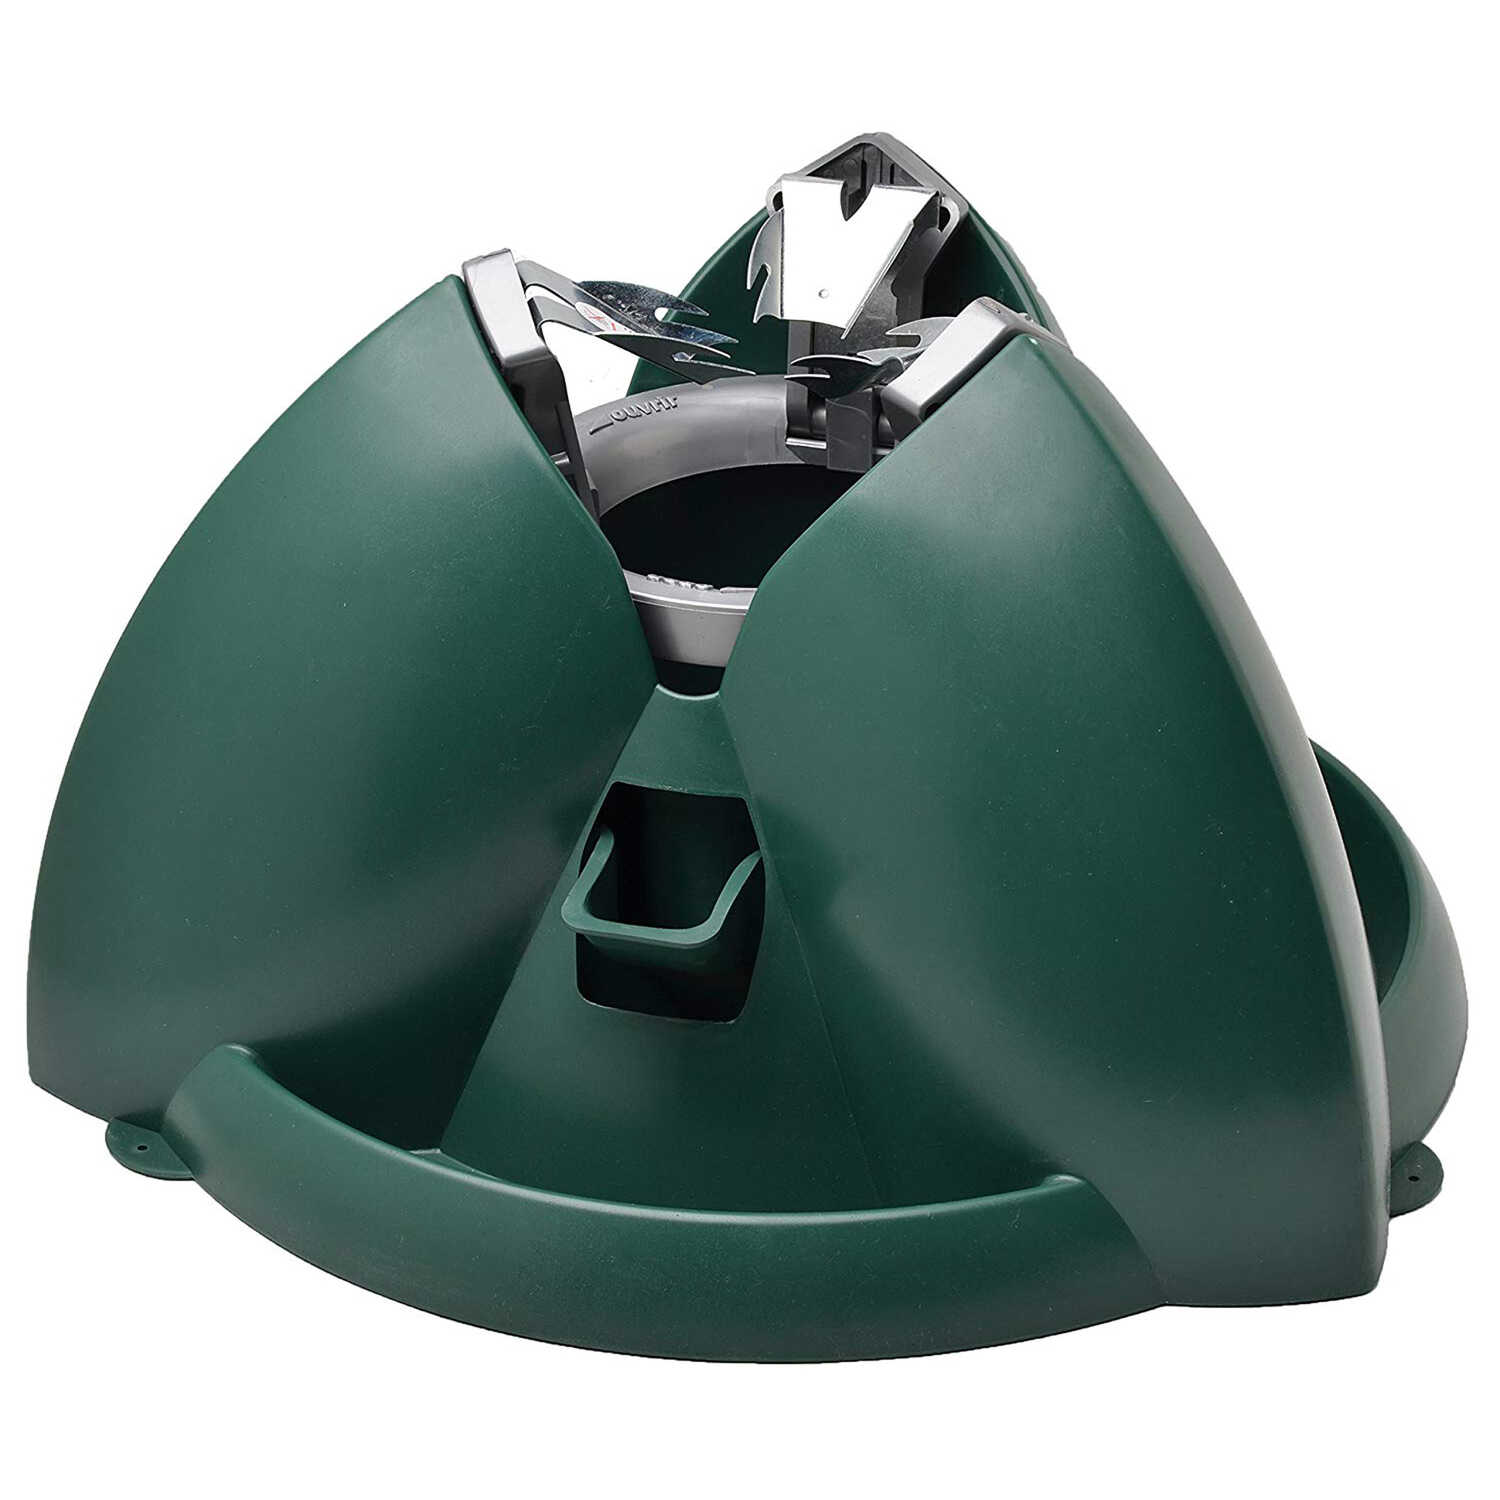 Black and Decker  Plastic  Green  Christmas Tree Stand  11.5 ft. Maximum Tree Height